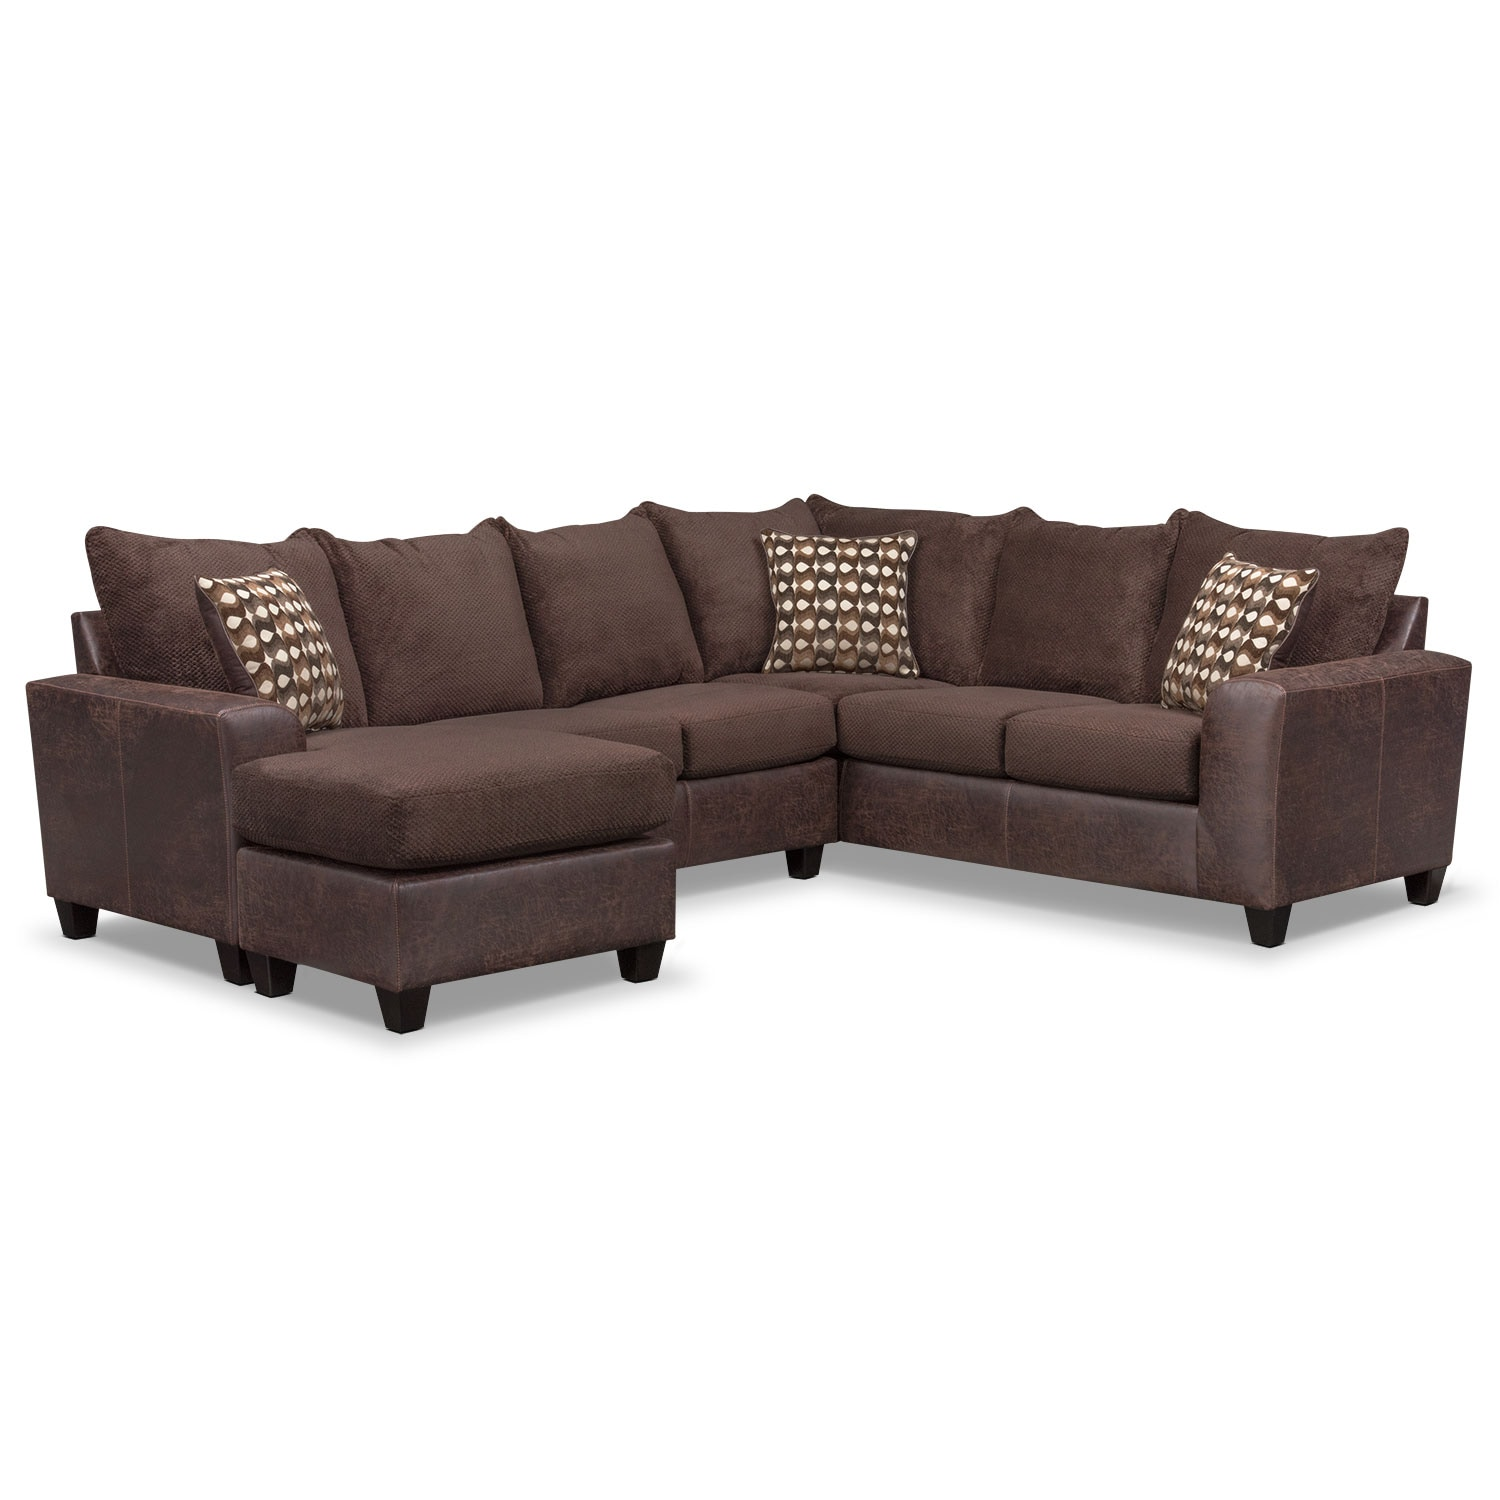 where to donate sectional sofa best cleaning singapore brando 3 piece with chaise and swivel chair set